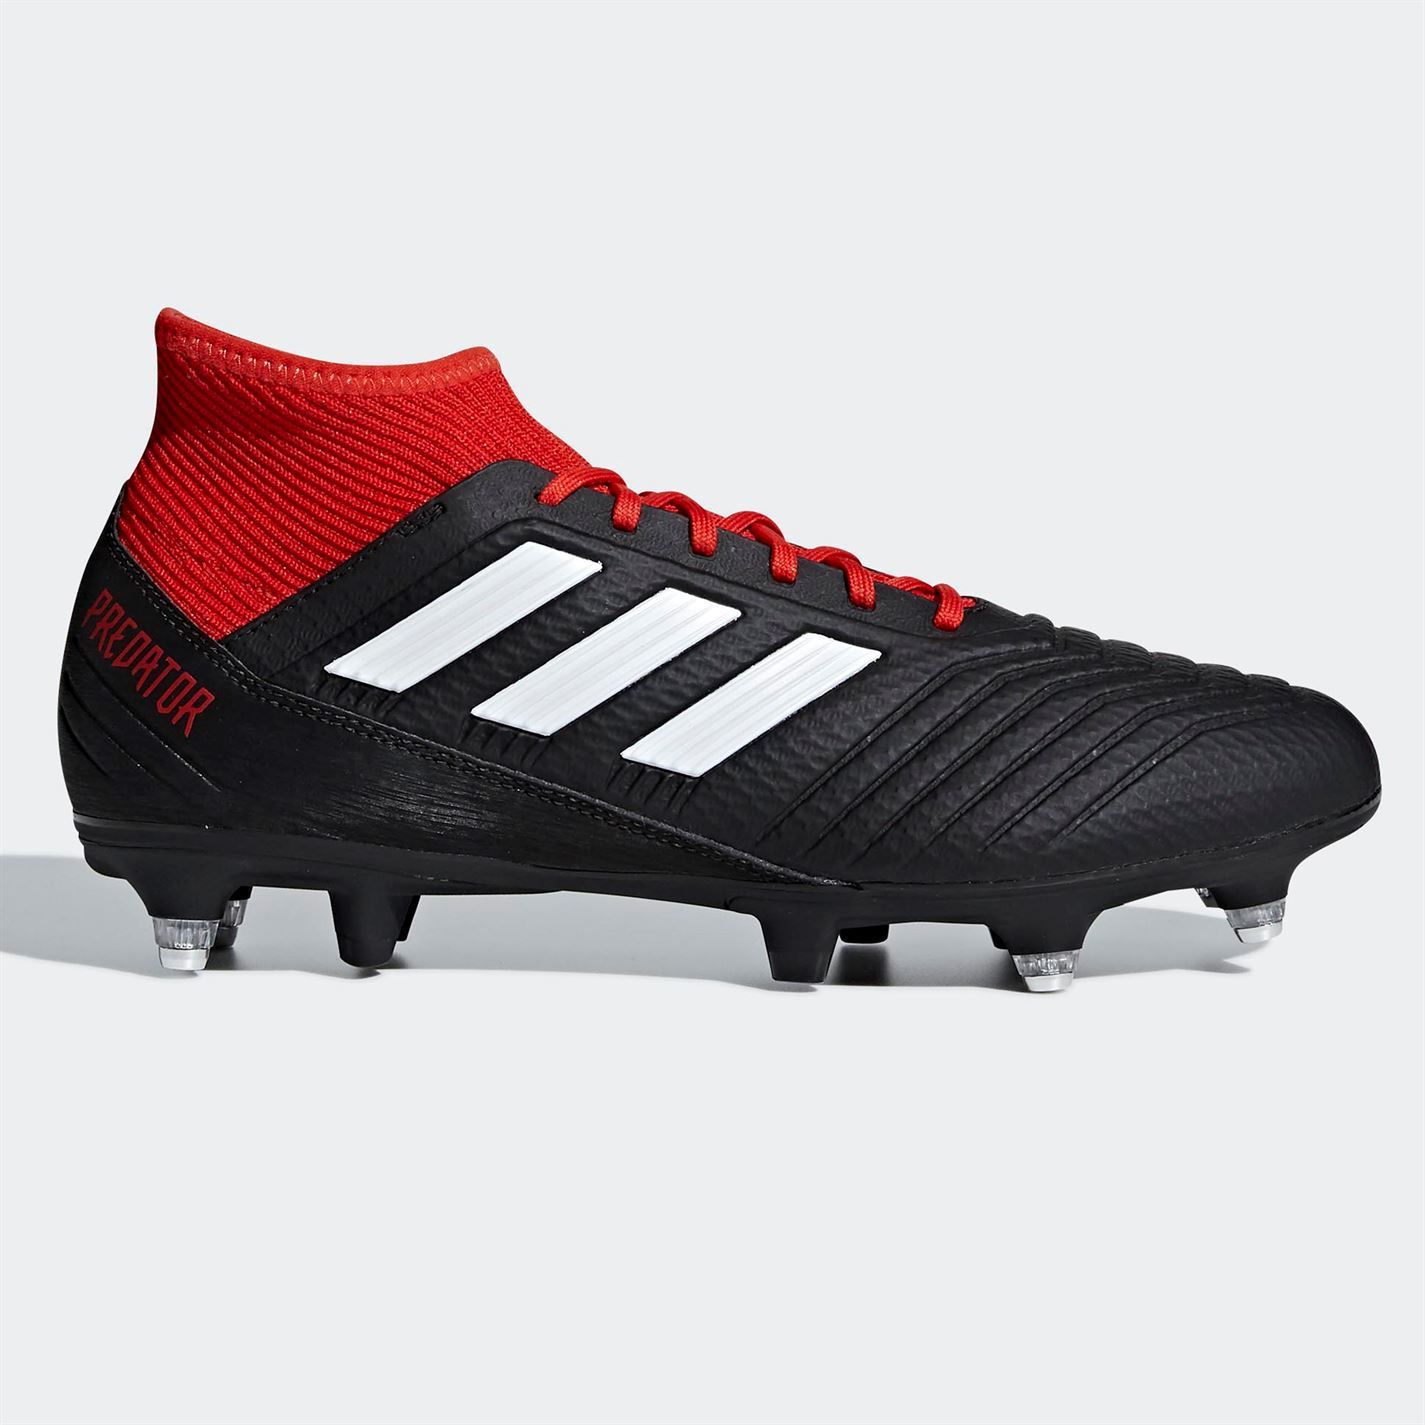 ... adidas predator 18.3 SG Soft Ground Football Boots Mens Soccer Shoes  Cleats ba6f7b6269e